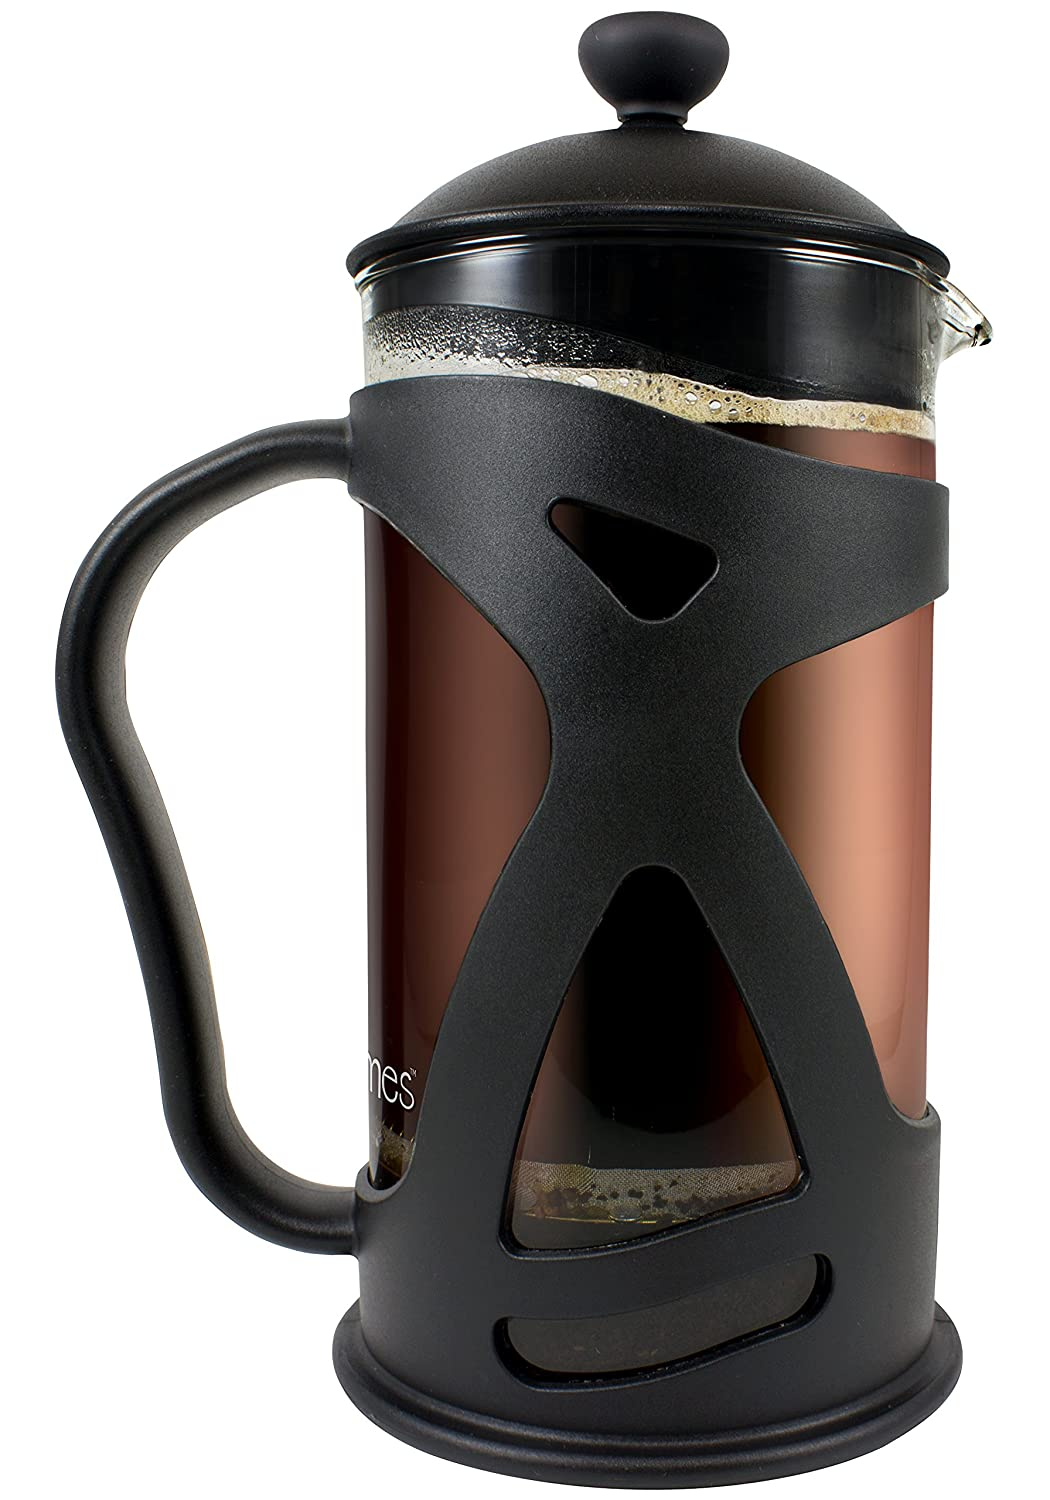 Bed bath beyond french press - Amazon Com Kona French Press Coffee Maker 8 Cup 1 Liter 34 Oz Glass Tea Pot Black Home Kitchen